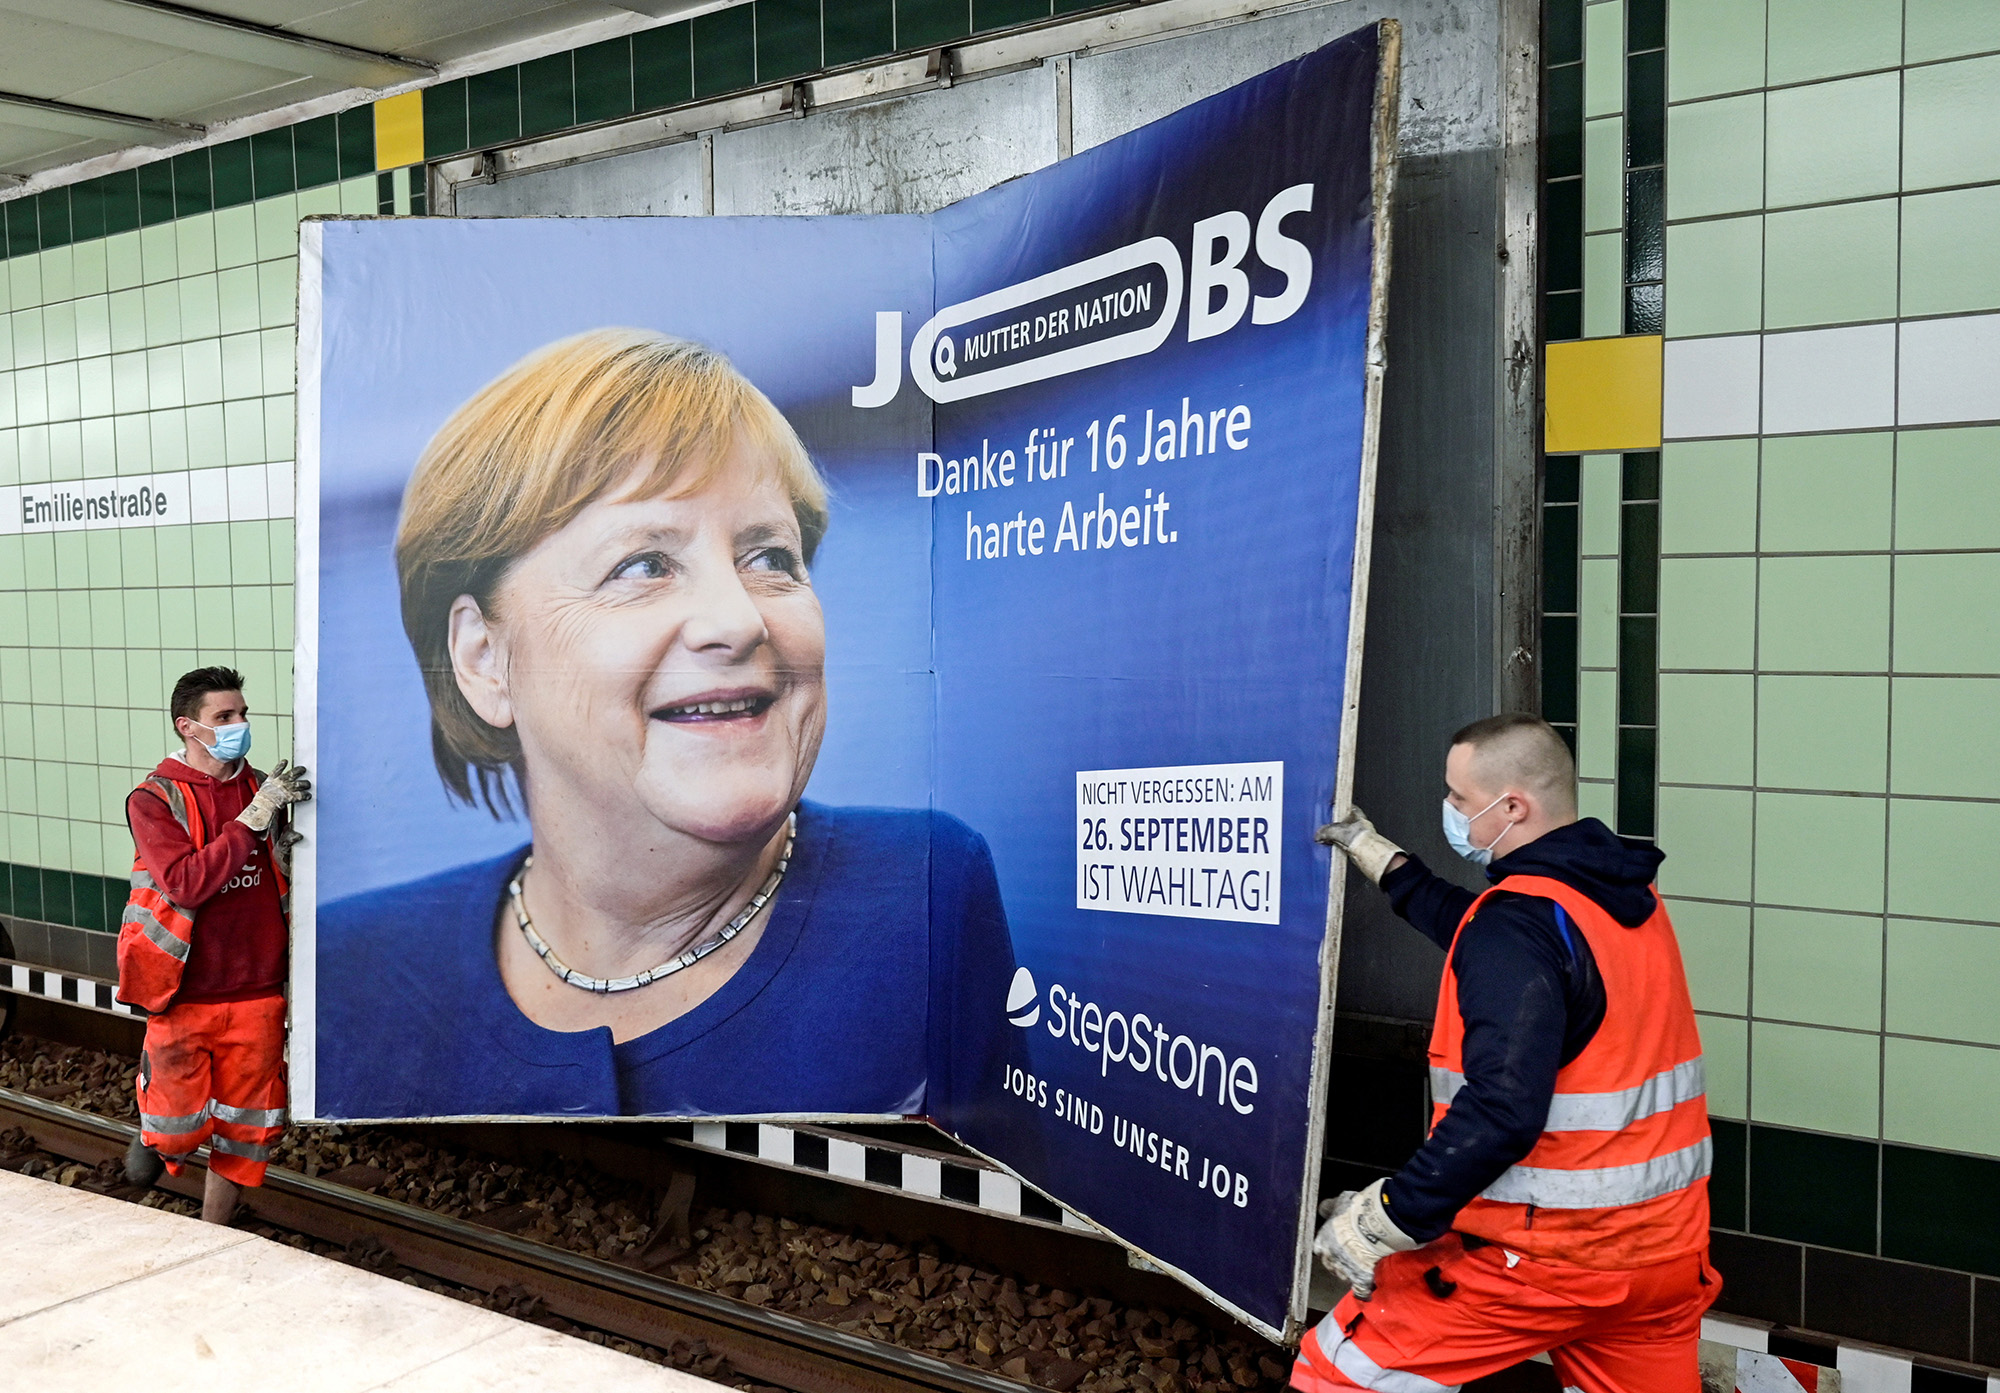 Workers remove an advertisement showing German Chancellor Angela Merkel with a slogan that reads